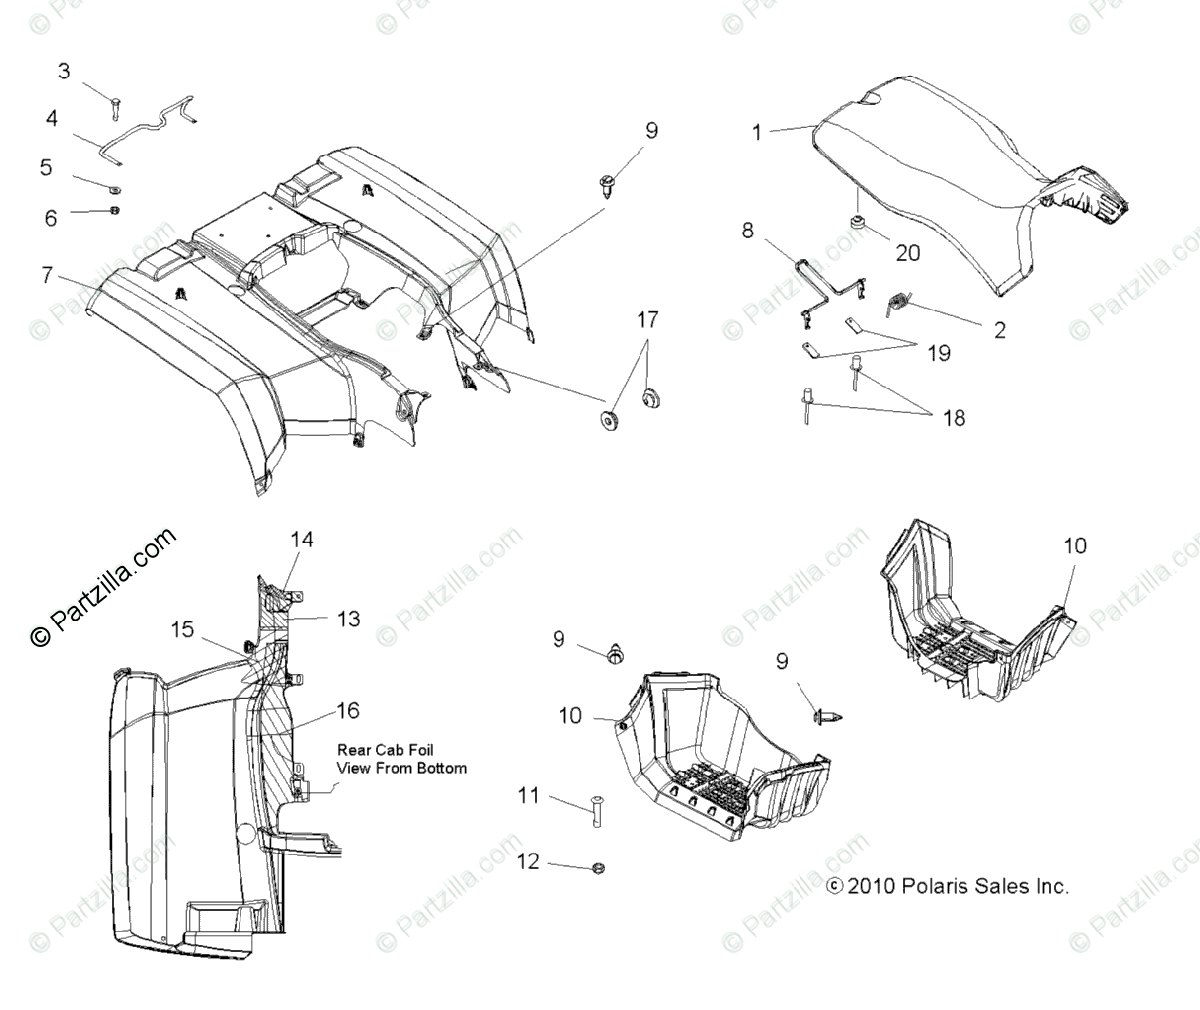 Polaris ATV 2012 OEM Parts Diagram for Body, Rear Cab